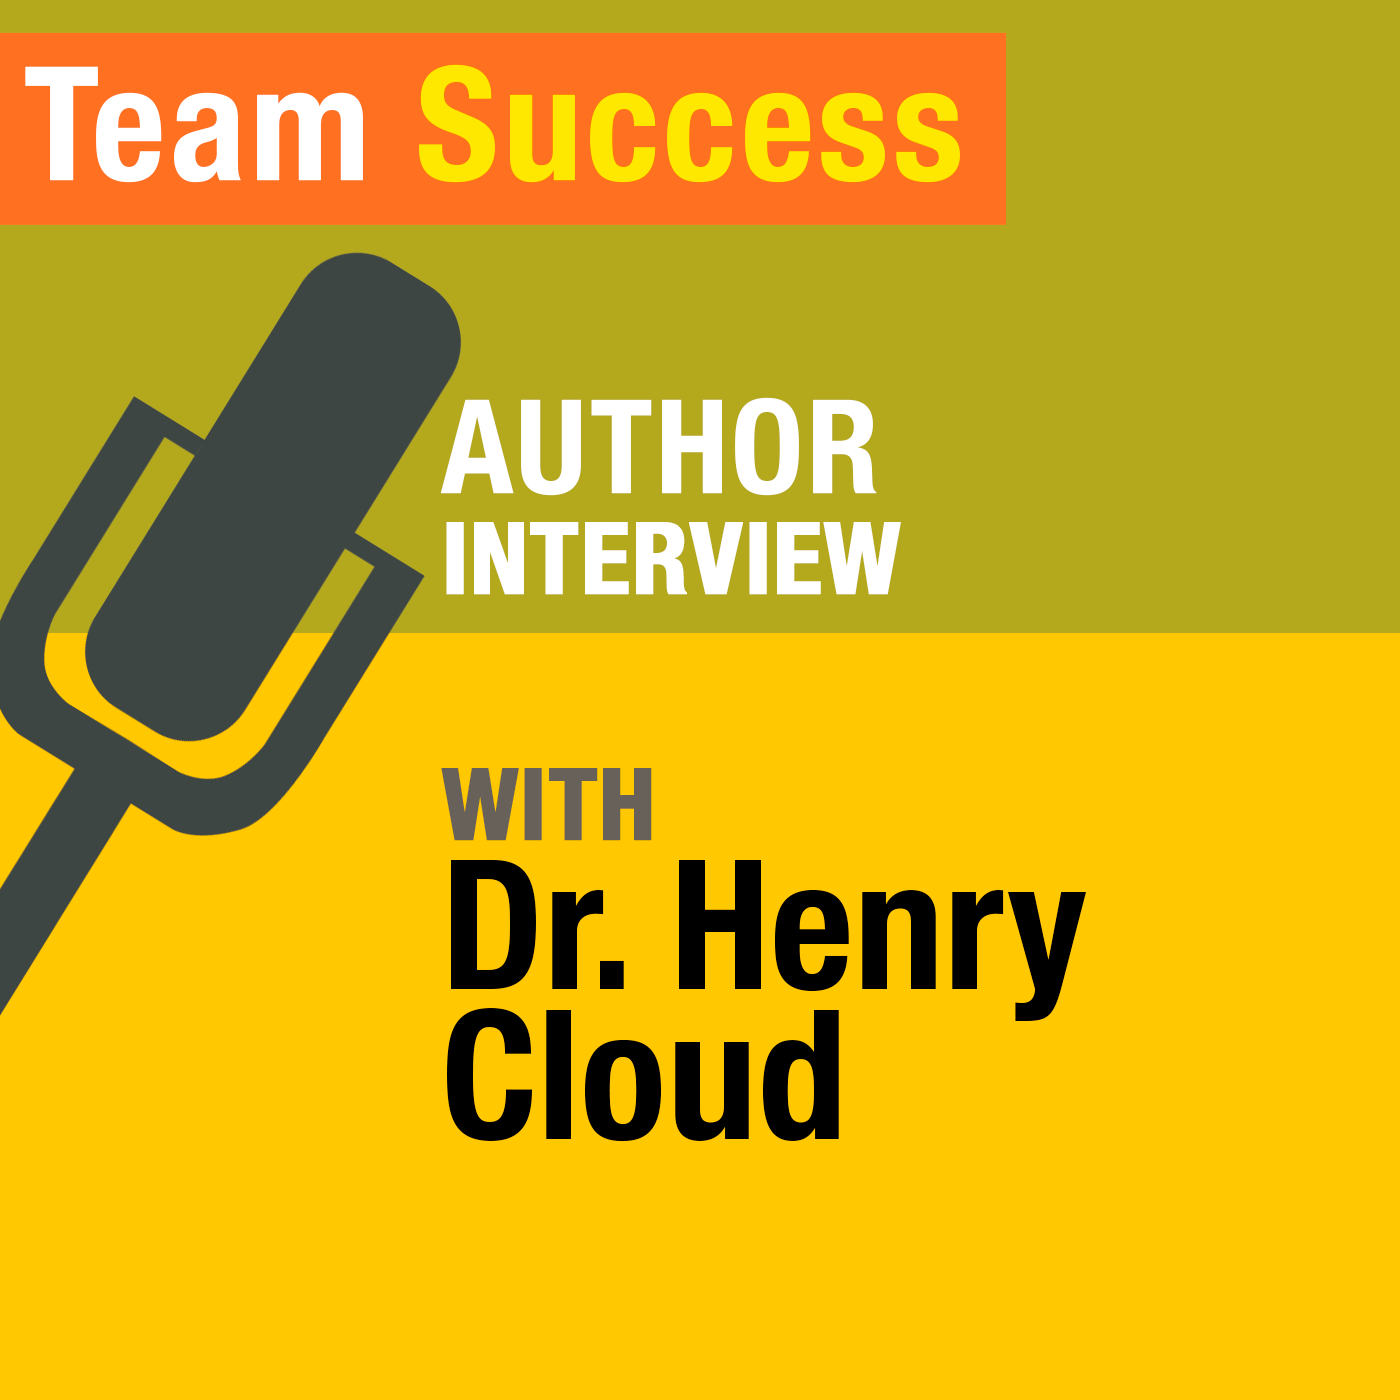 An Interview With Dr. Henry Cloud - Team Success Podcast